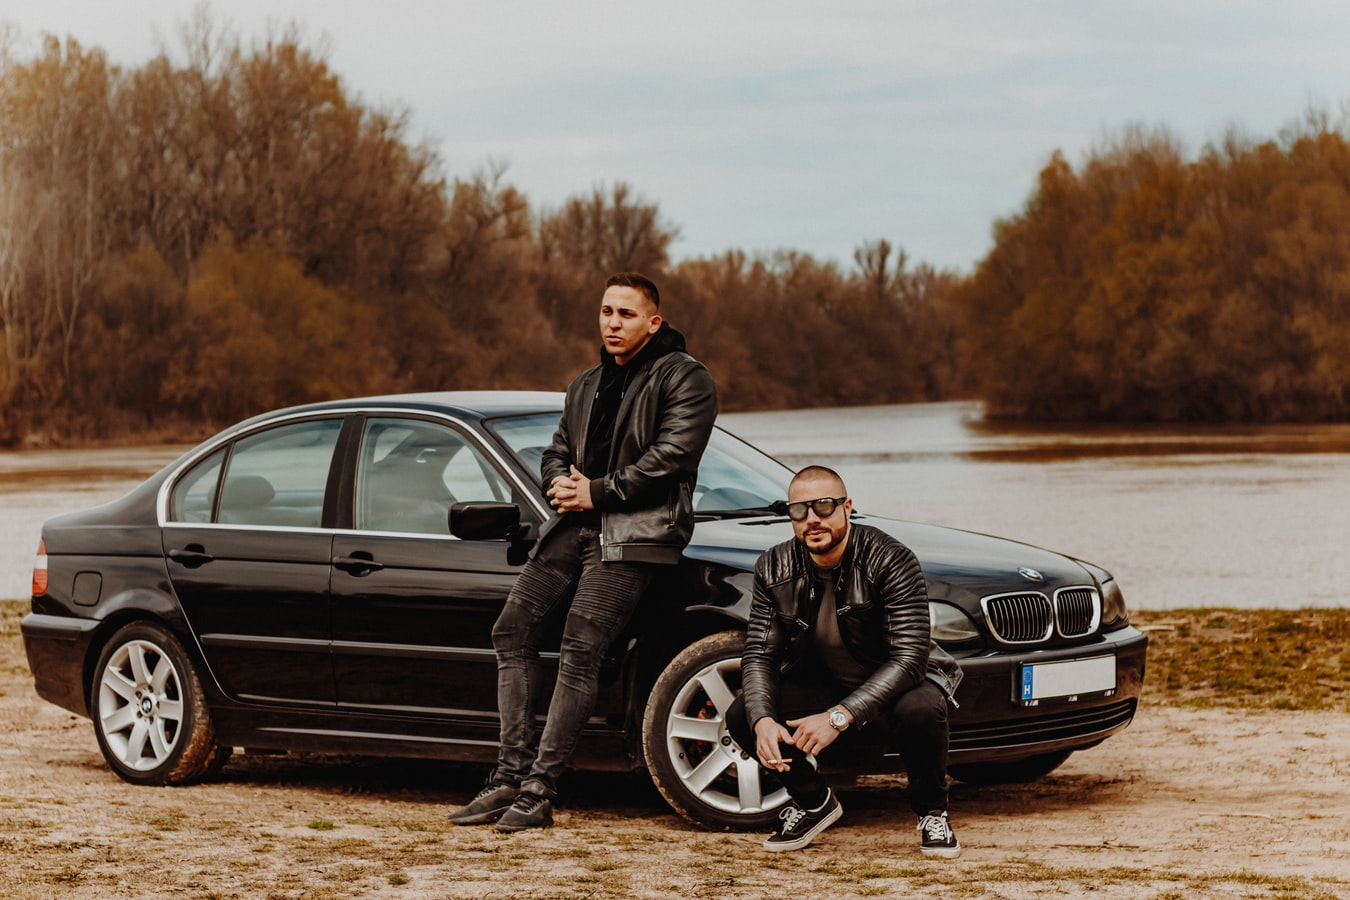 Two guys next to a car